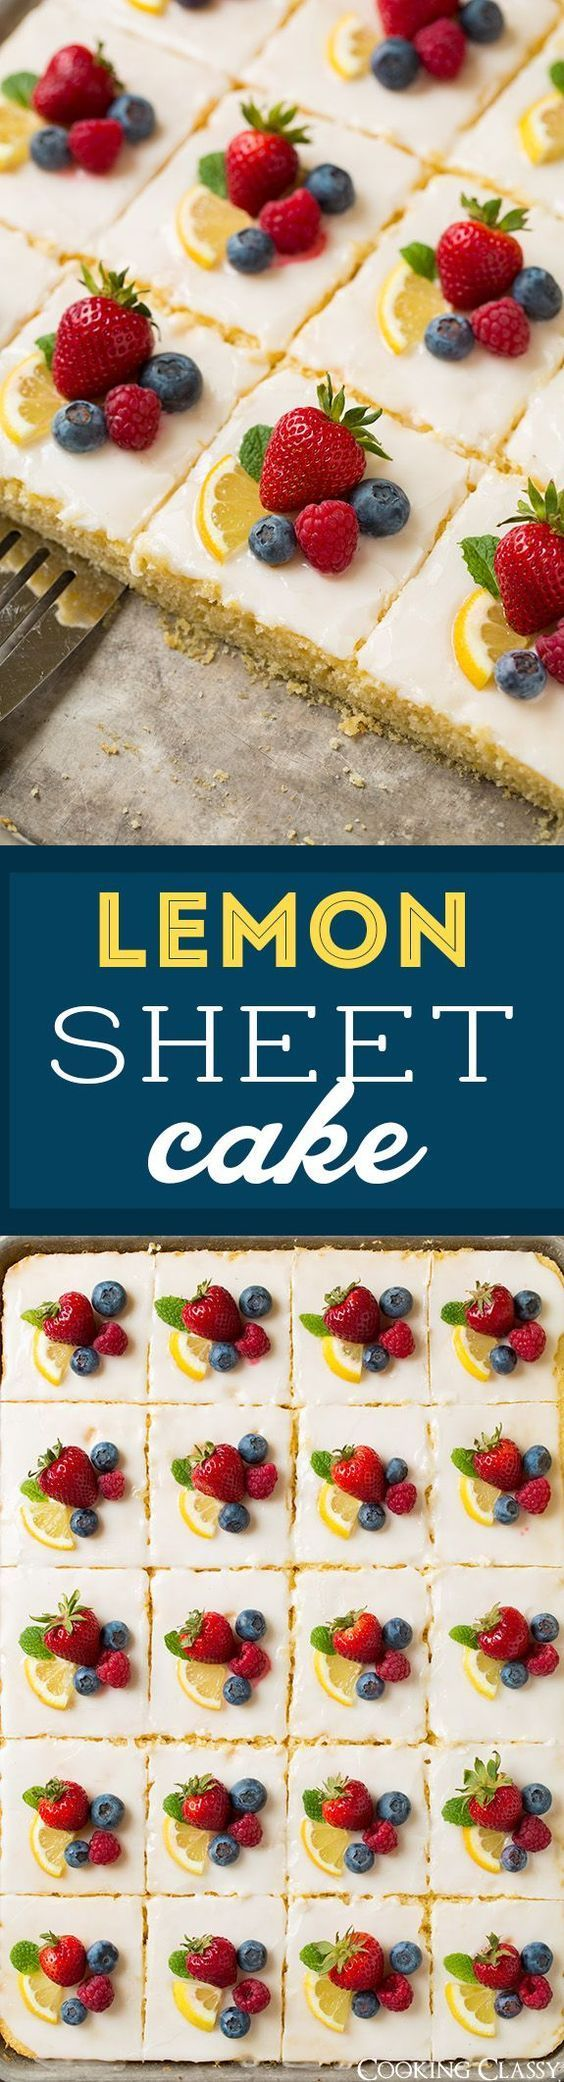 Lemon Sheet Cake Dessert Recipe via Cooking Classy - one of the best sheet cakes I've ever had!! So bright and lemony, some kind of berries are a must! The Best EASY Sheet Cakes Recipes - Simple and Quick Party Crowds Desserts for Holidays, Special Occasions and Family Celebrations